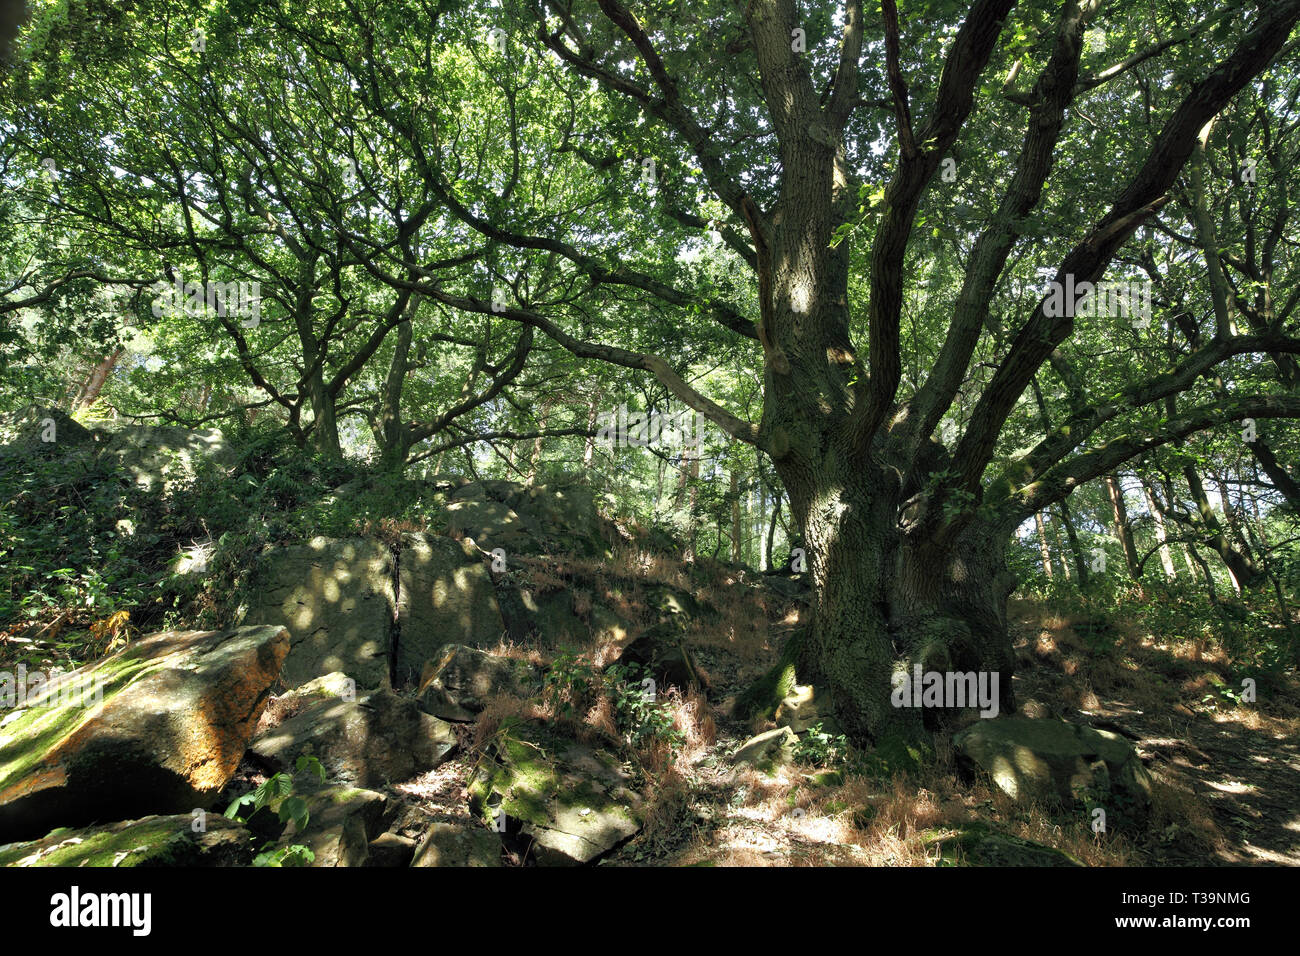 Dappled sunlight on ancient rocks and an old oak tree in the Outwoods, part of Charnwood Forest, near Loughborough,  Leicestershire. - Stock Image